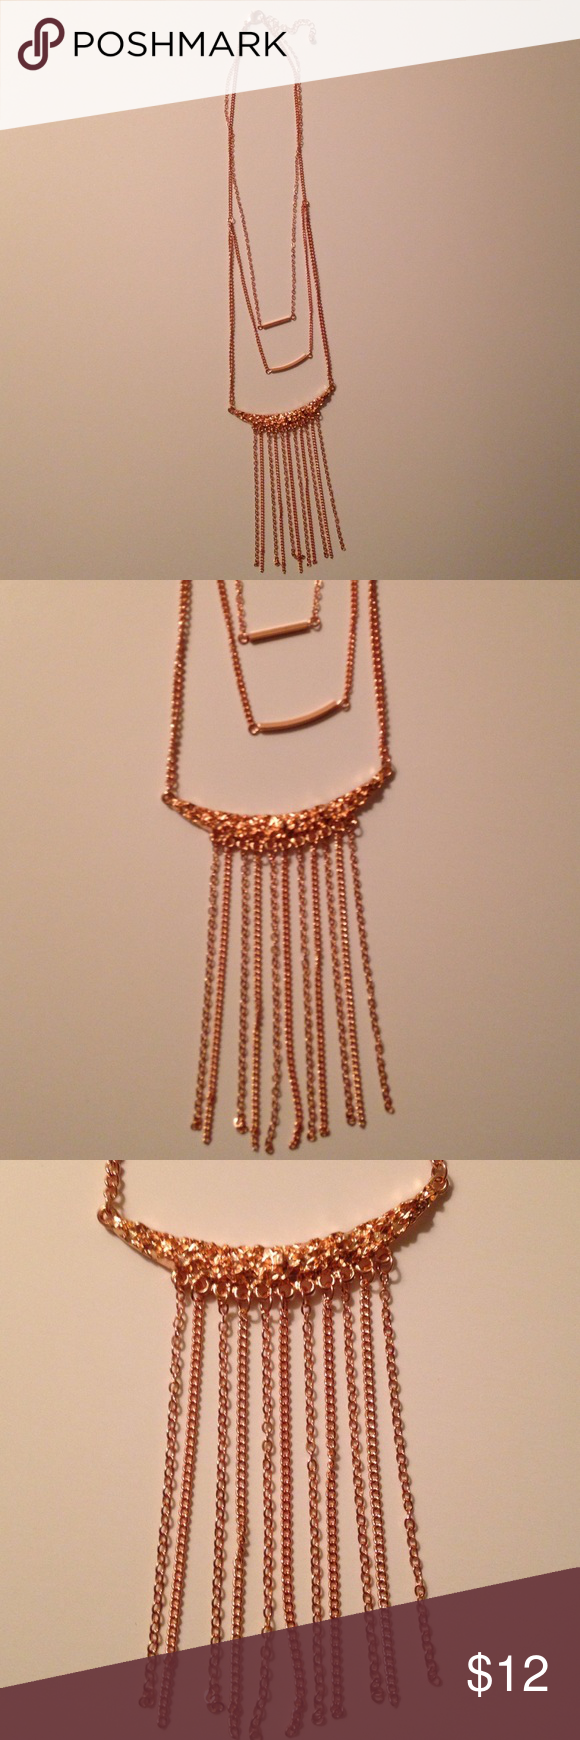 NWT rose gold color necklace Rose gold color necklace has two bar pendants and a cascading chain pendant. The shorter bar is is 3/4 inches across. The next bar is 1 inch across and the cascading chains are 3 inches long. The necklace is 22 inches long with a 3 inch extender Jewelry Necklaces